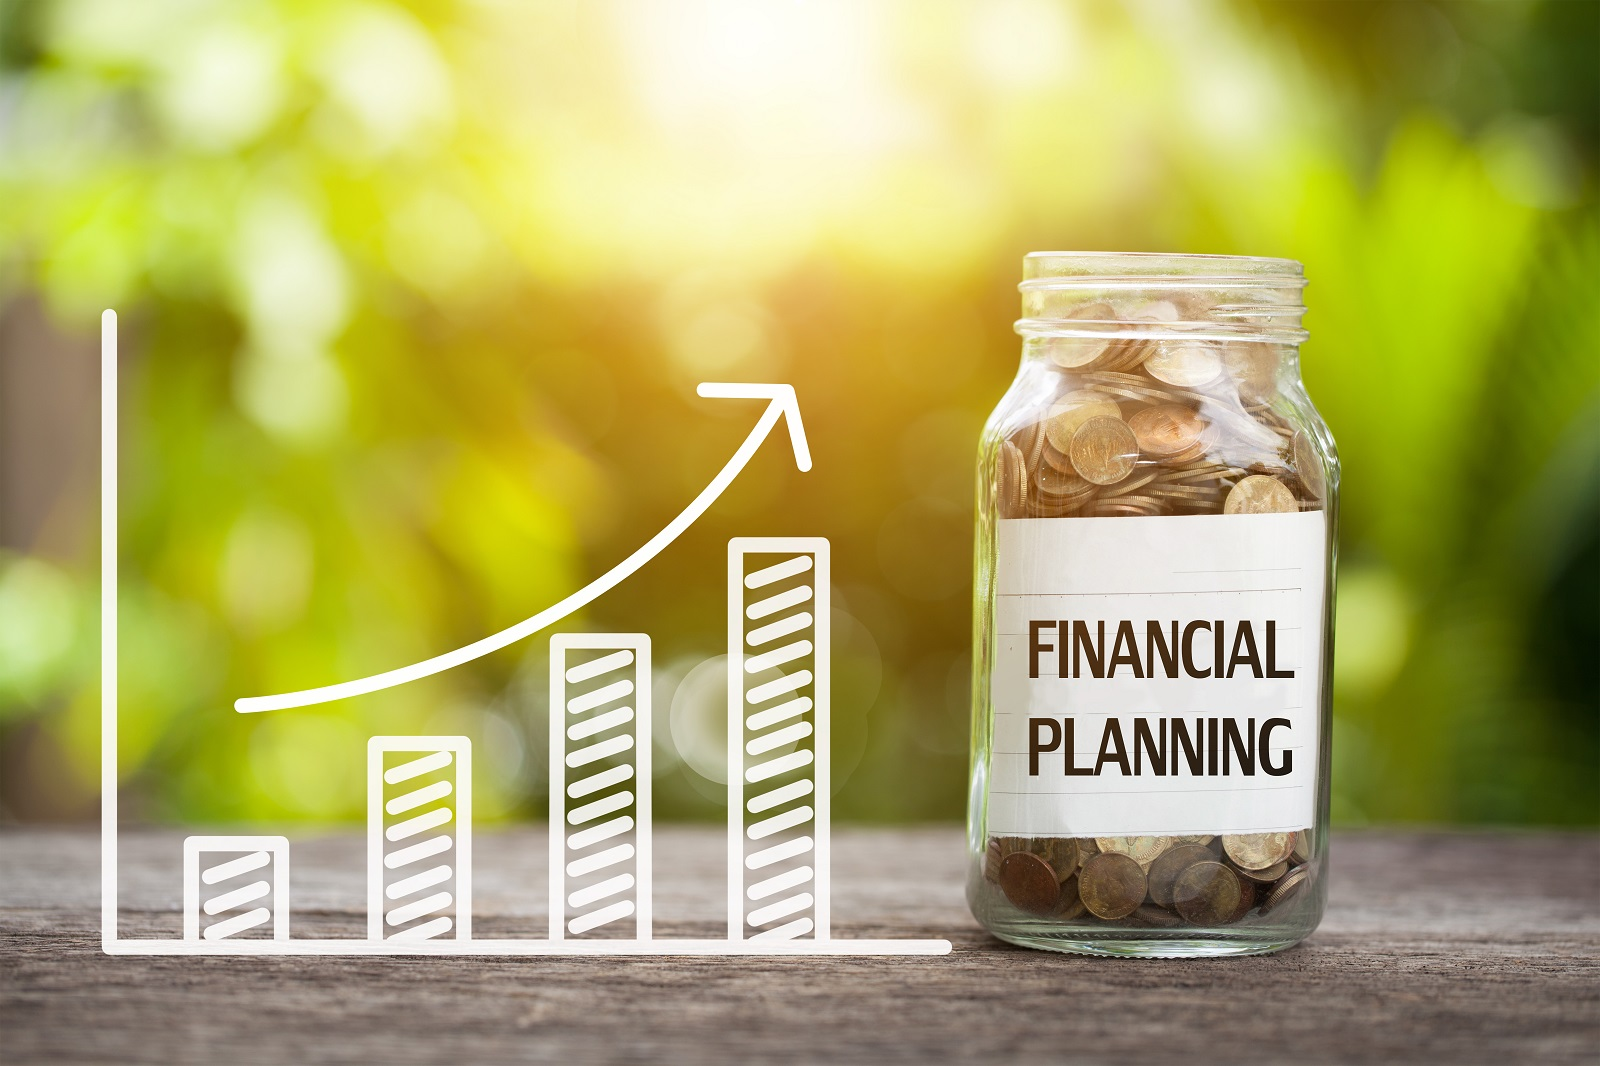 Here's How Small Business Financial Planning Software Can Fix Your Business